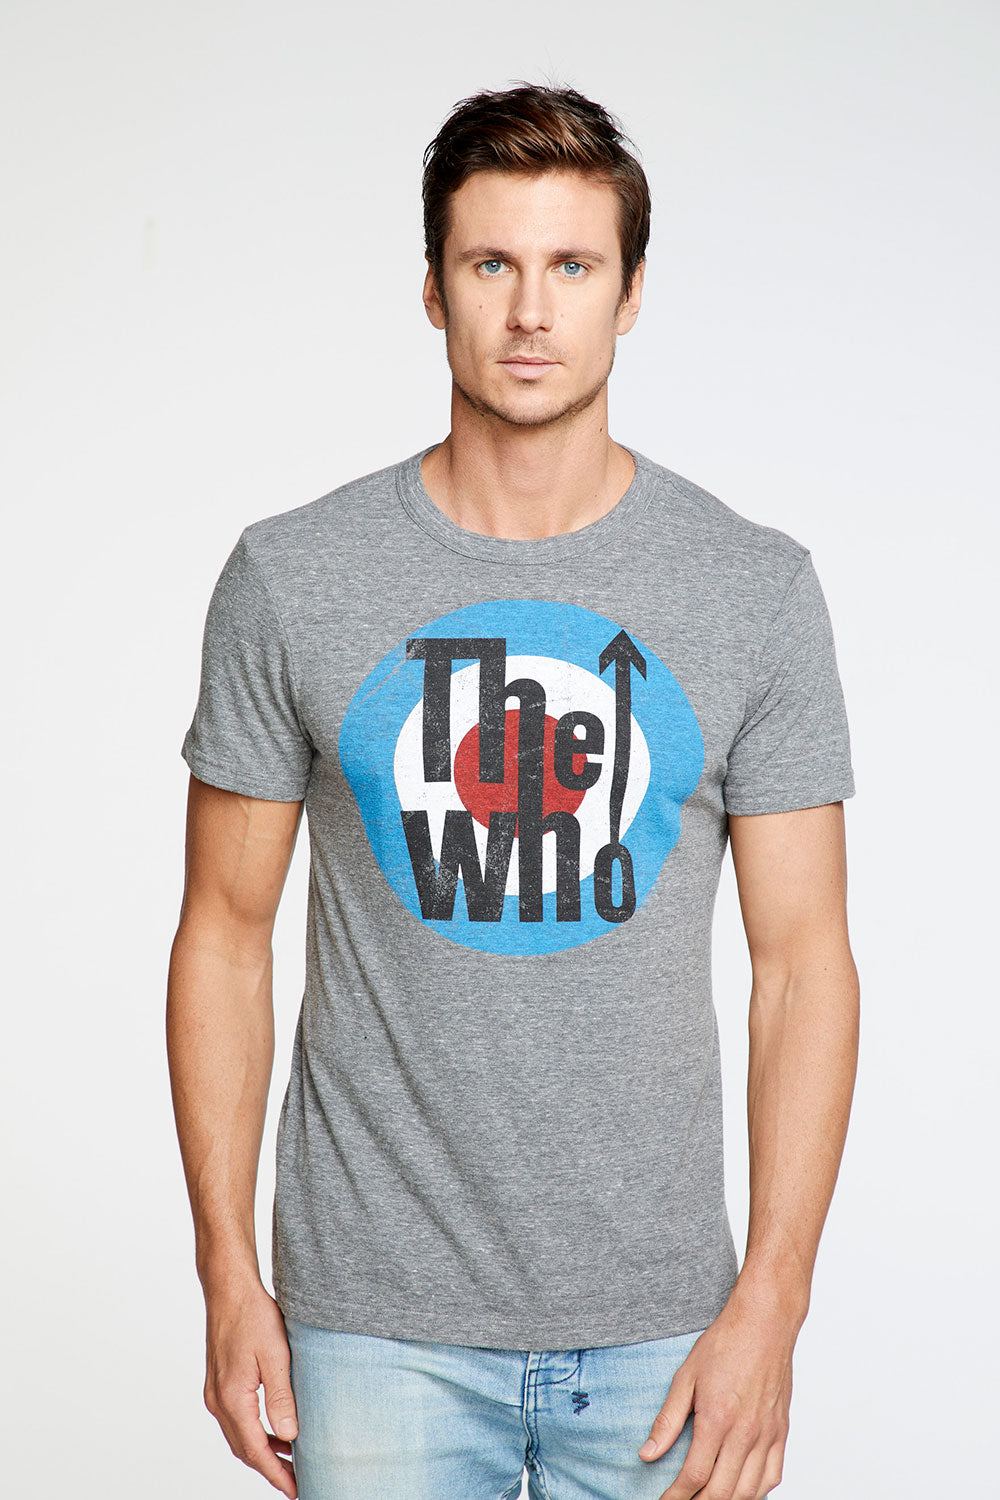 The Who - The Who Crew Neck Tee MENS chaserbrand4.myshopify.com